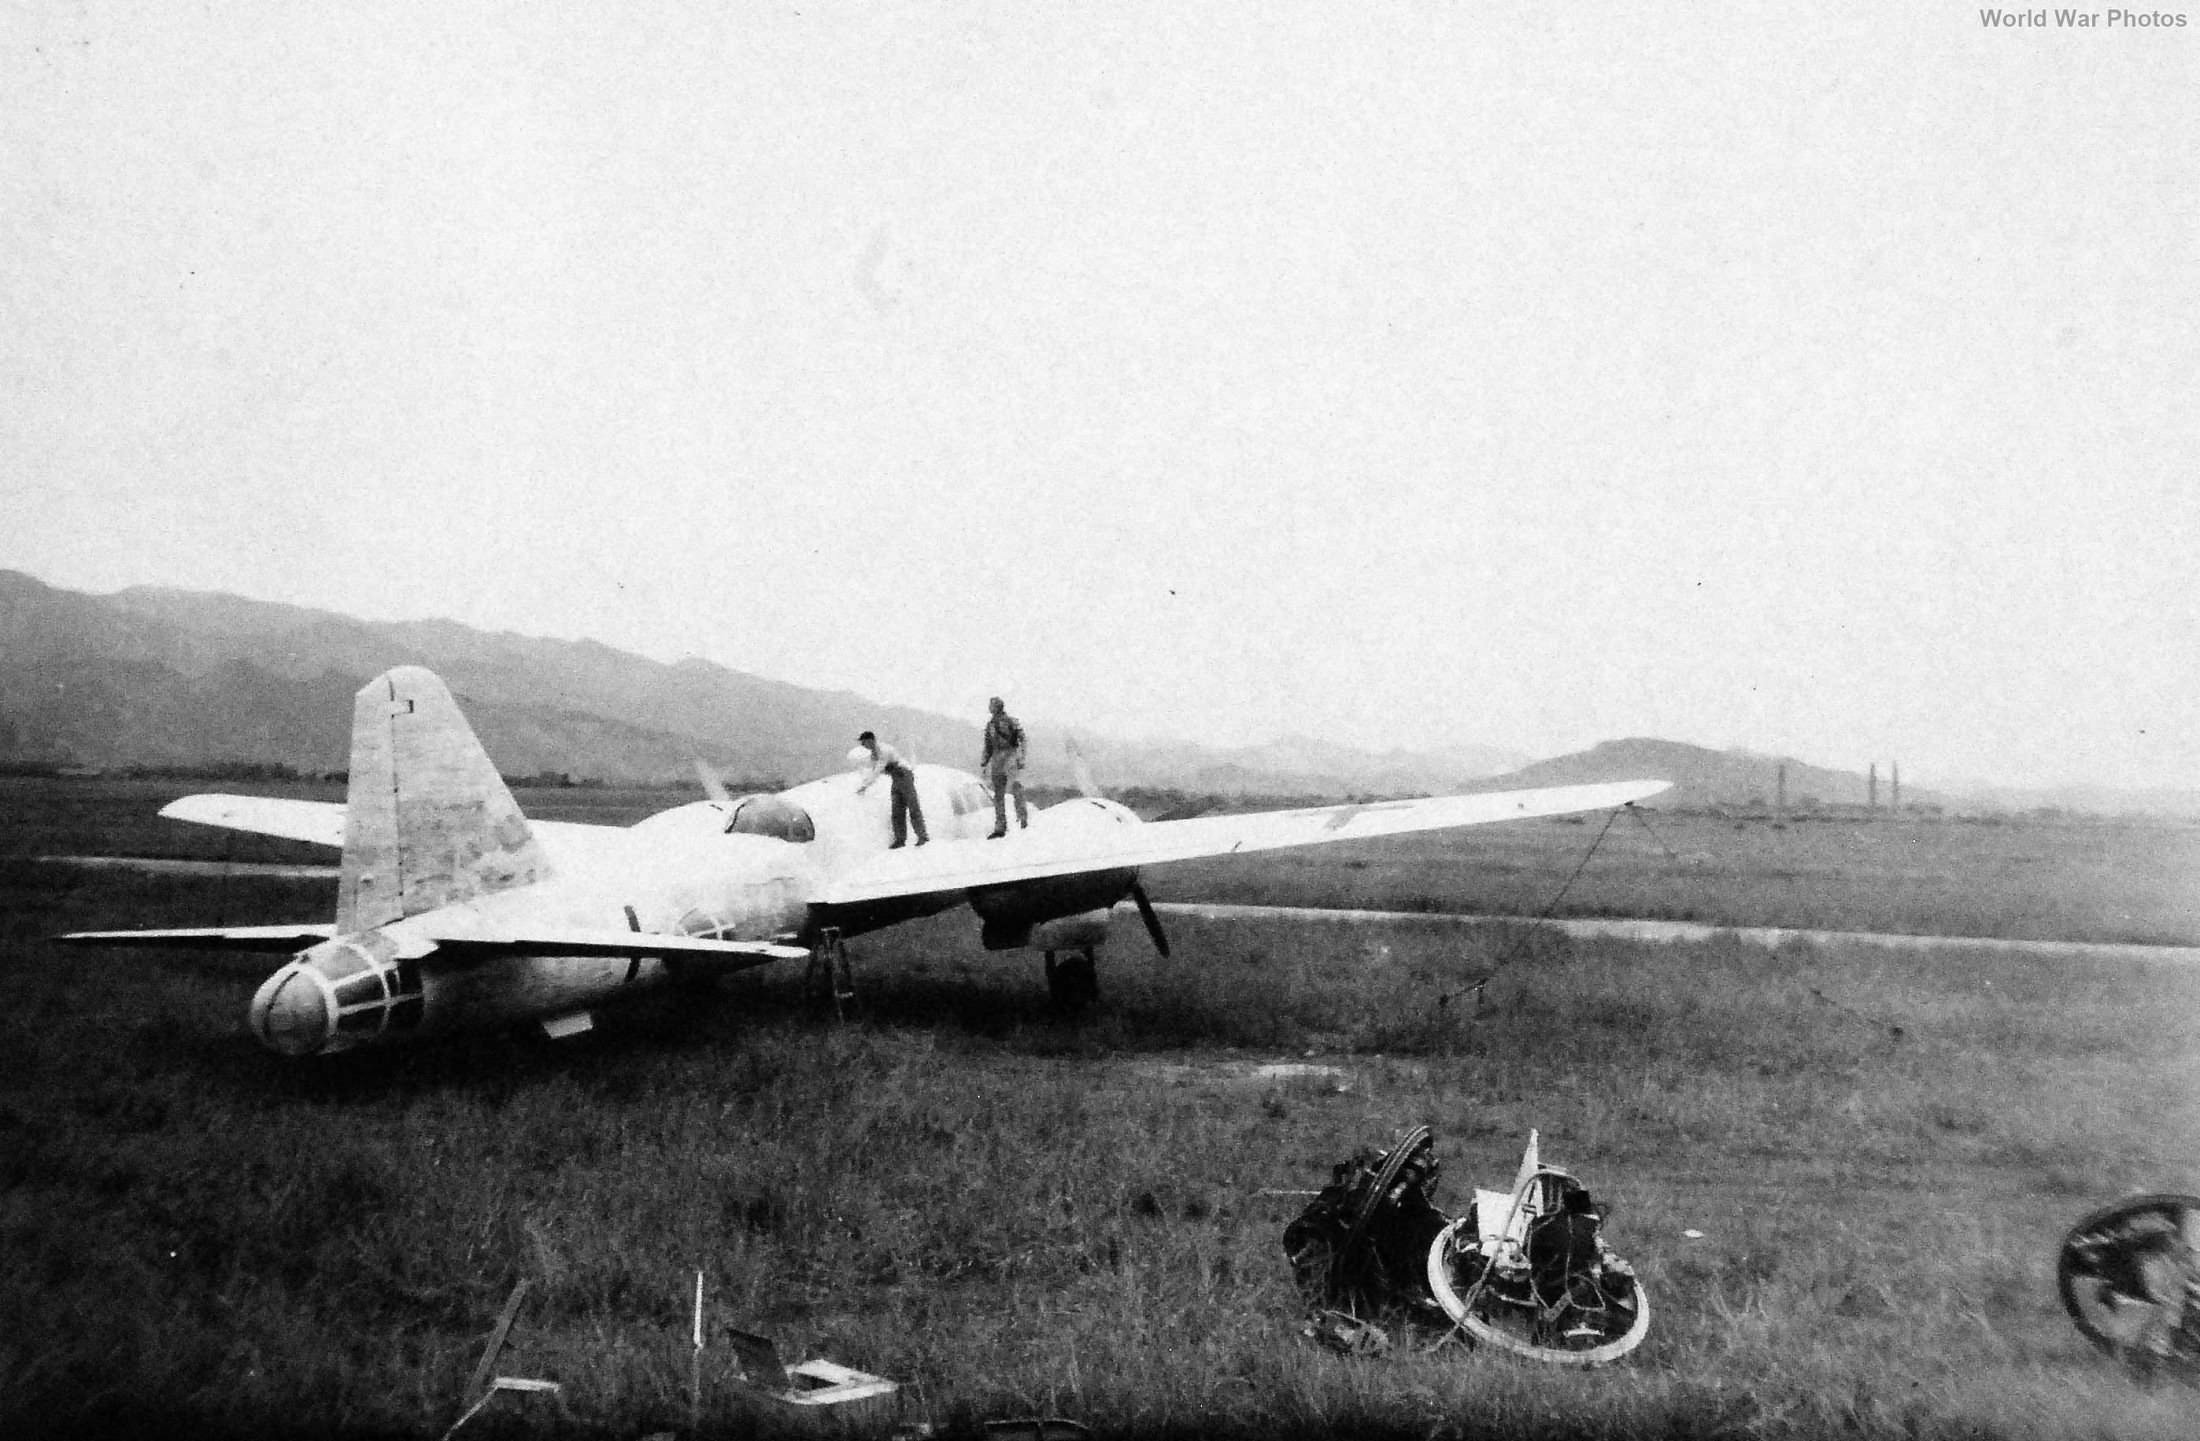 Ki-67 Matsuyama Base September 5, 1945